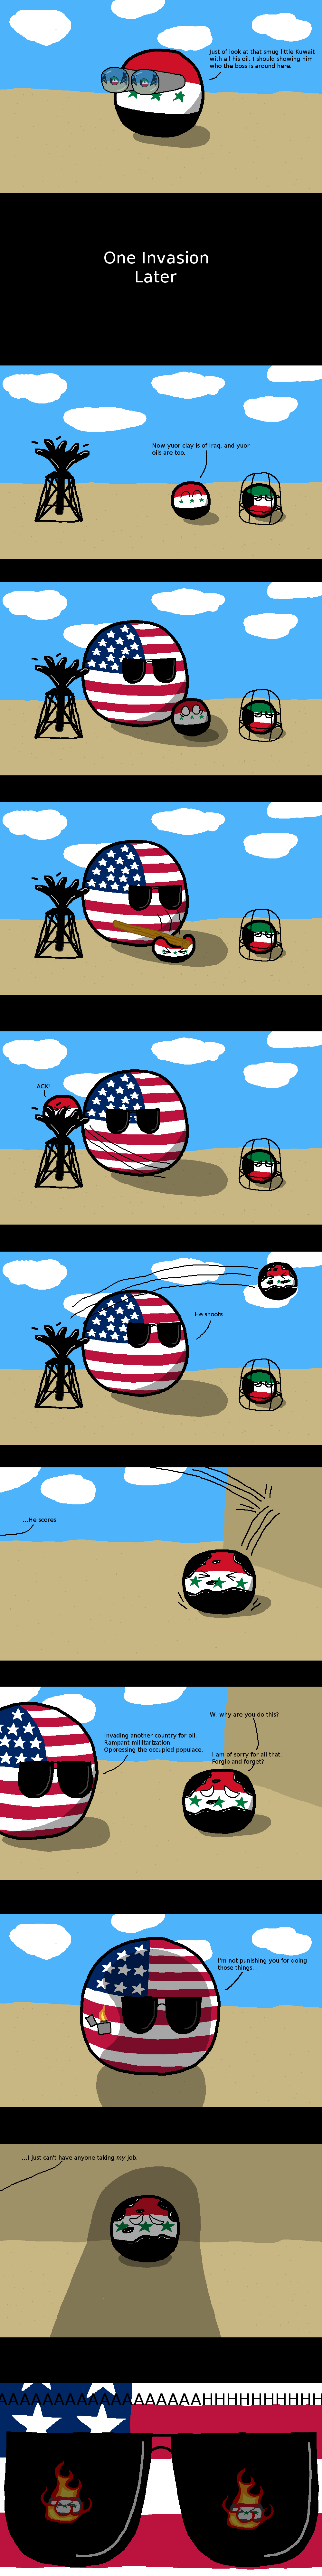 One day... TL;DR : Murica Oil jokes. Creddit I think I'm going to post polandball again.. just of look at that smug little Kuwait with all his oil. I should sho